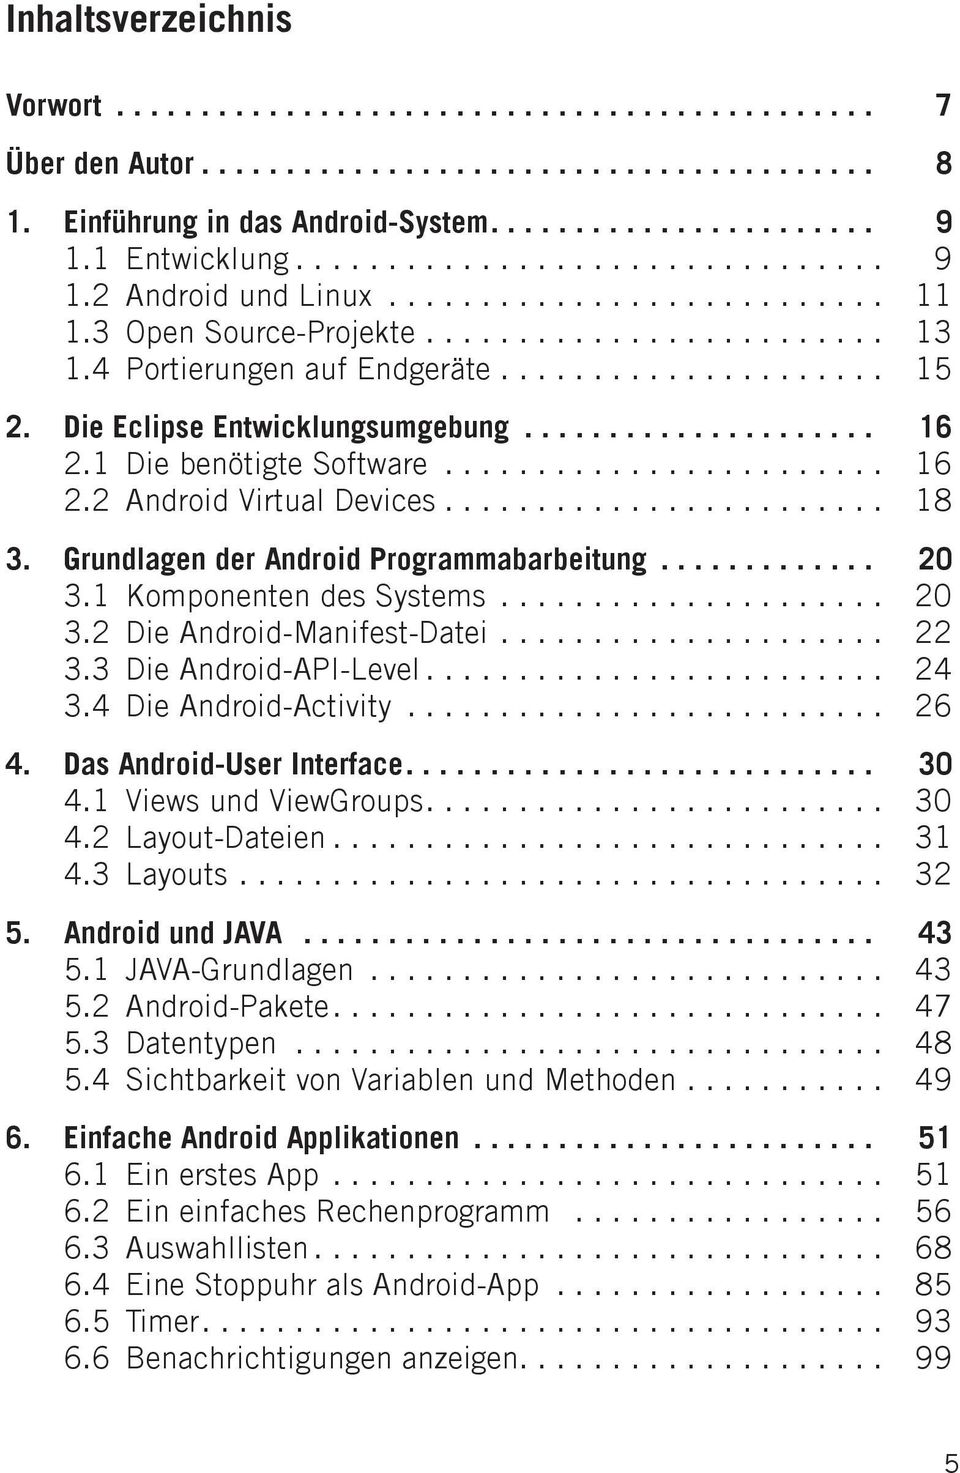 1 Die benötigte Software........................ 16 2.2 Android Virtual Devices........................ 18 3. Grundlagen der Android Programmabarbeitung............. 20 3.1 Komponenten des Systems.